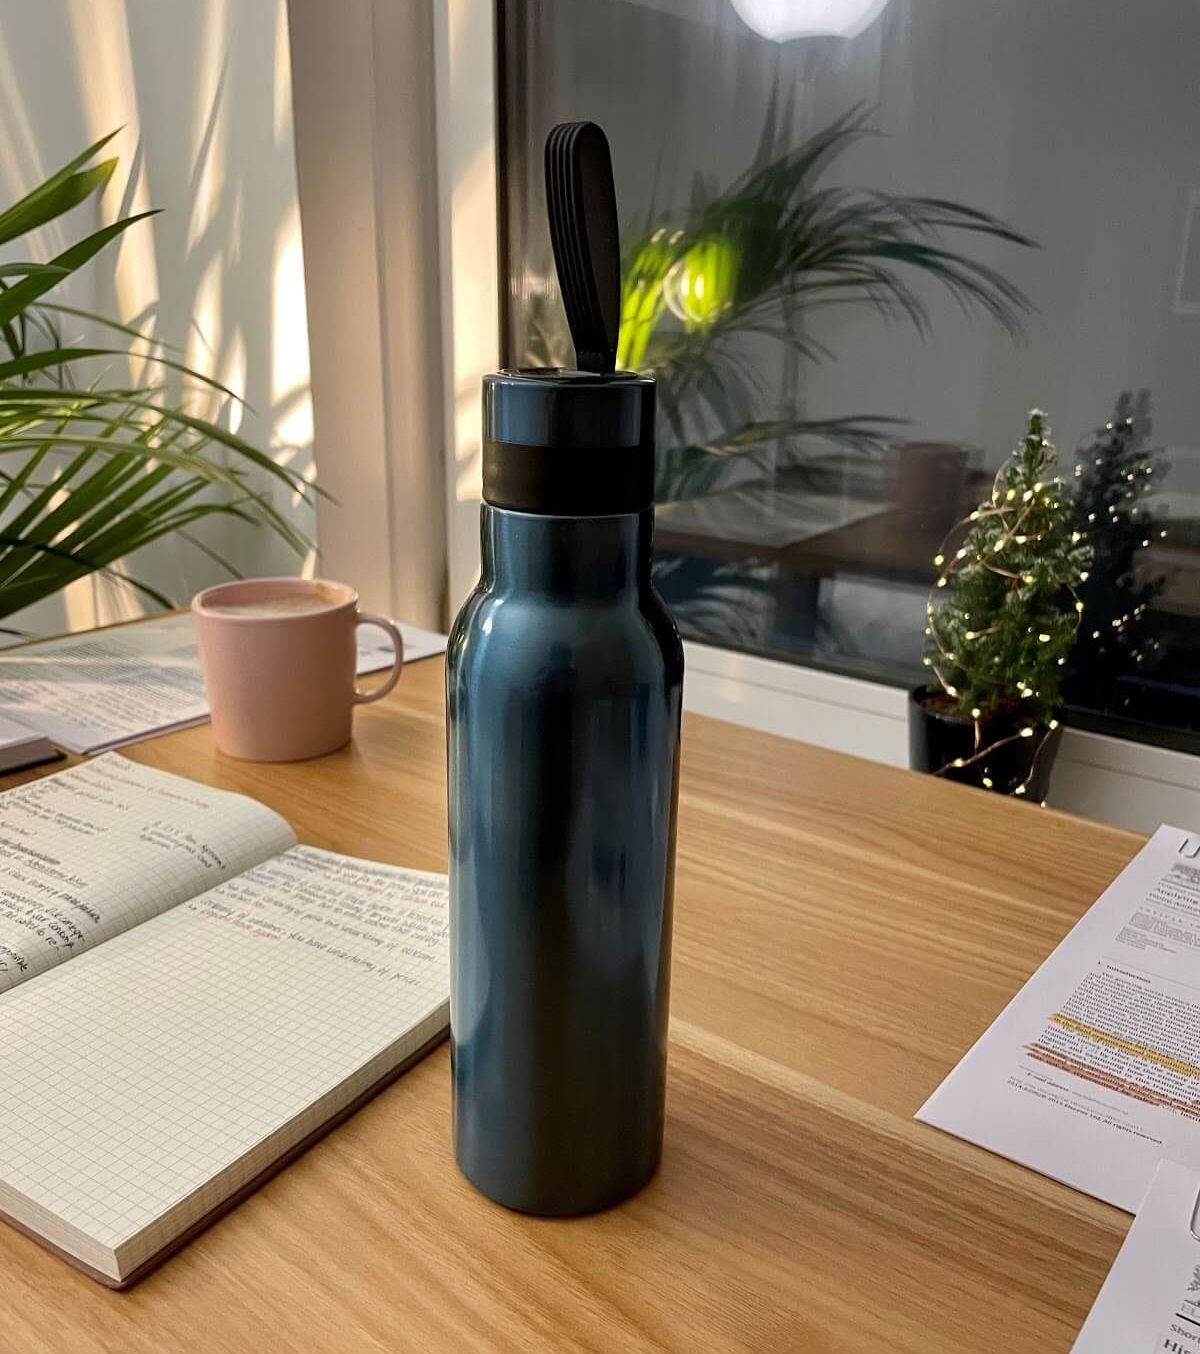 Merve's teal water bottle takes a prominent space on her desk